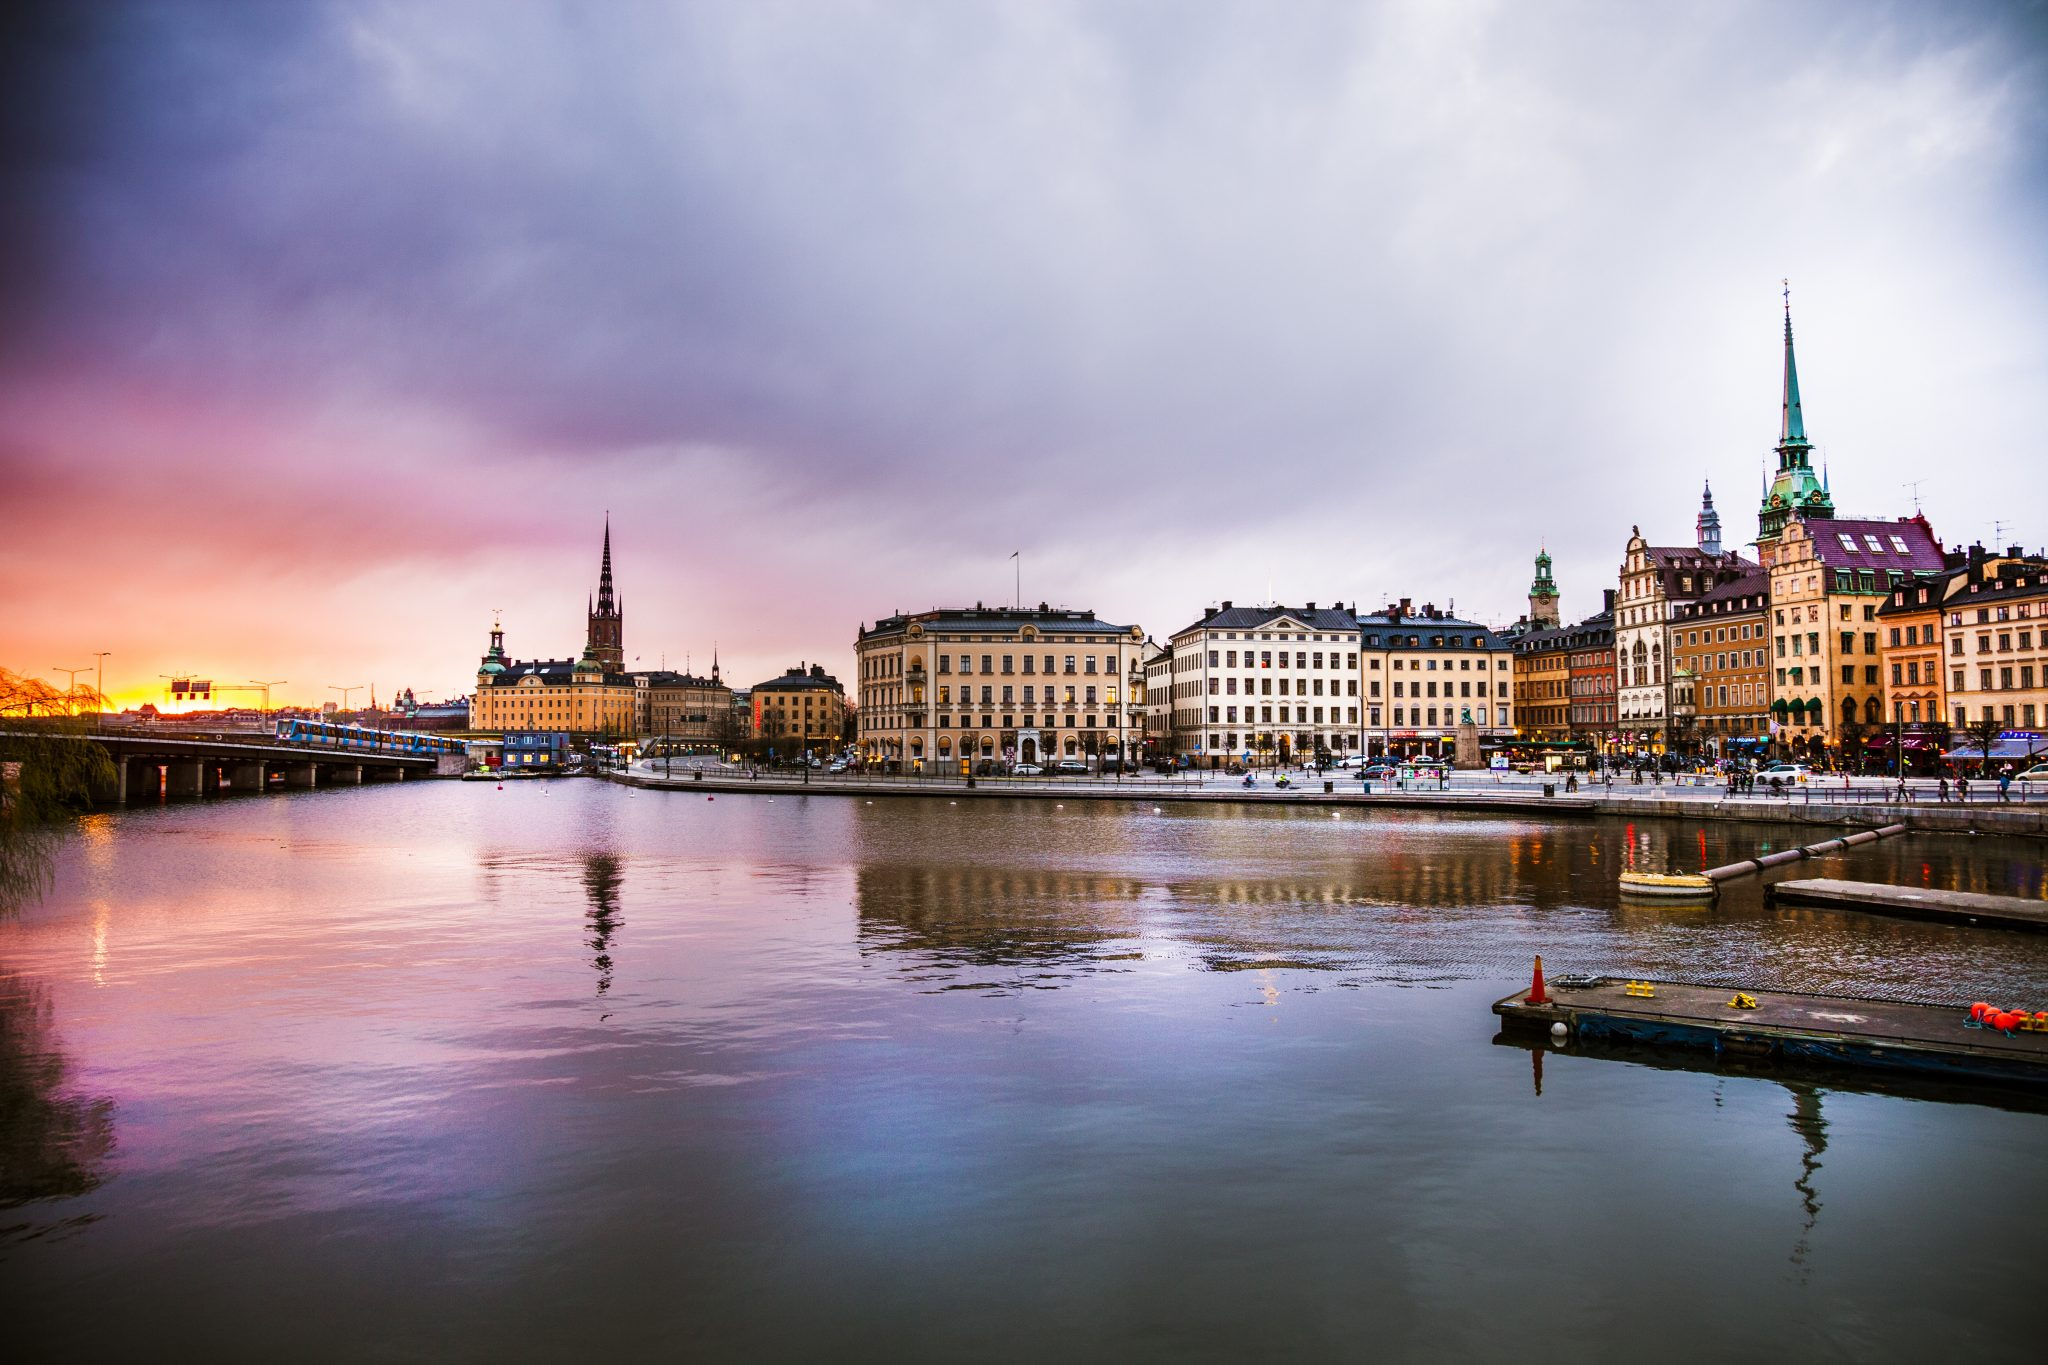 Stockholm, Sweden. Panorama of the old town and church at dusk